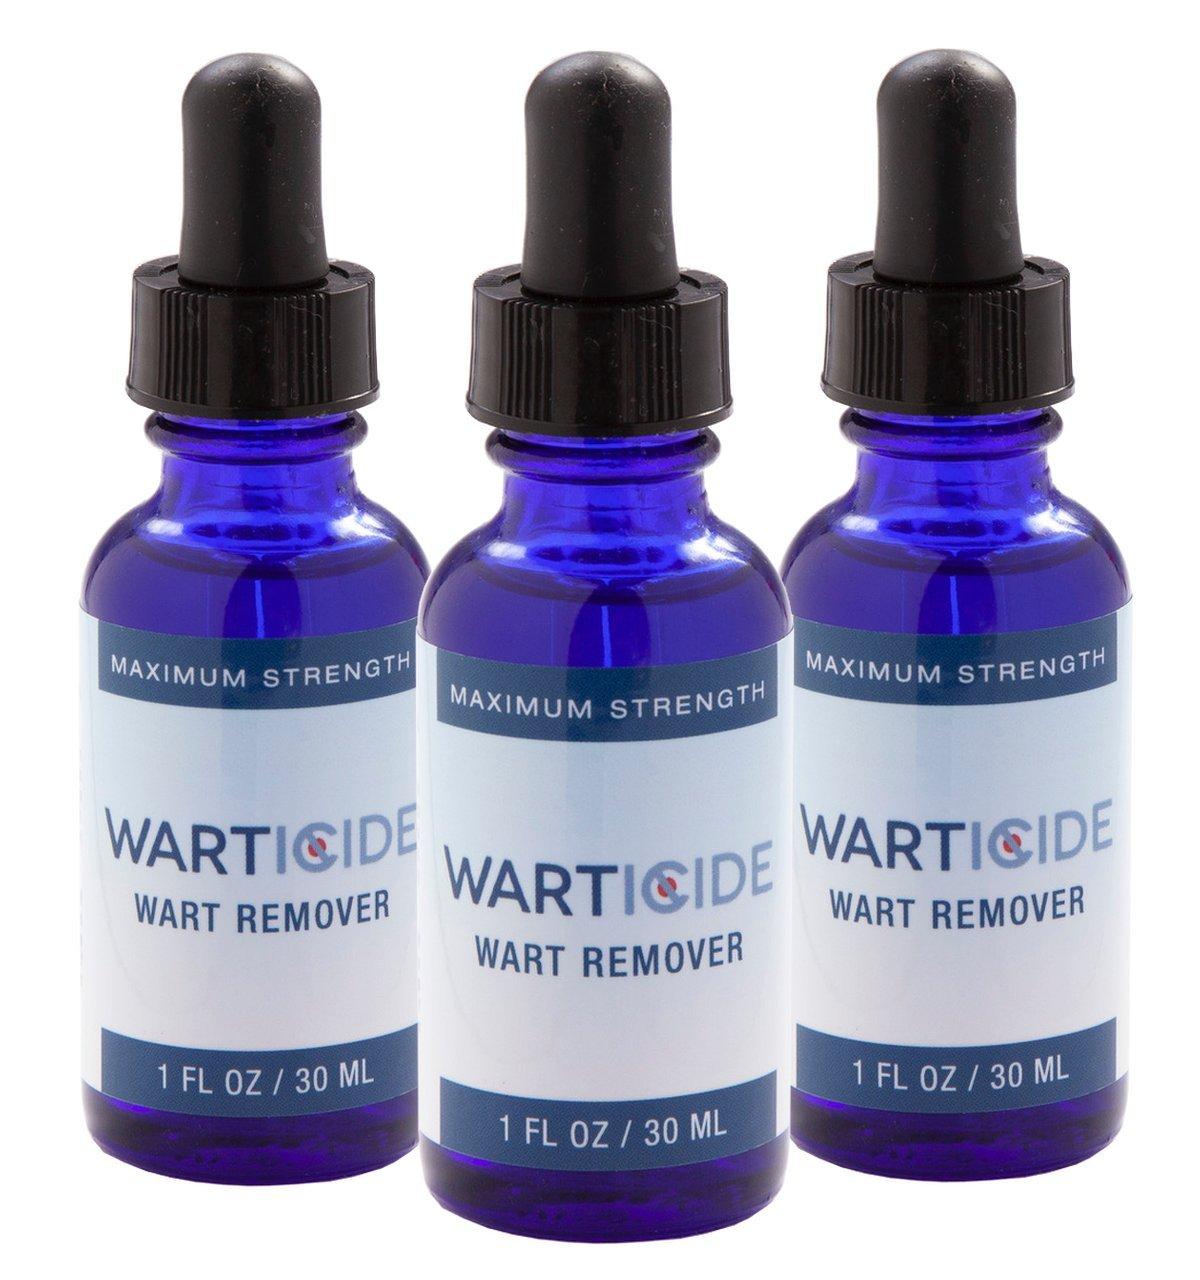 Warticide Fast-Acting Wart Remover, FDA Approved, Clinically Proven, Plantar and Genital Warts Treatment (3 Bottles) by Warticide